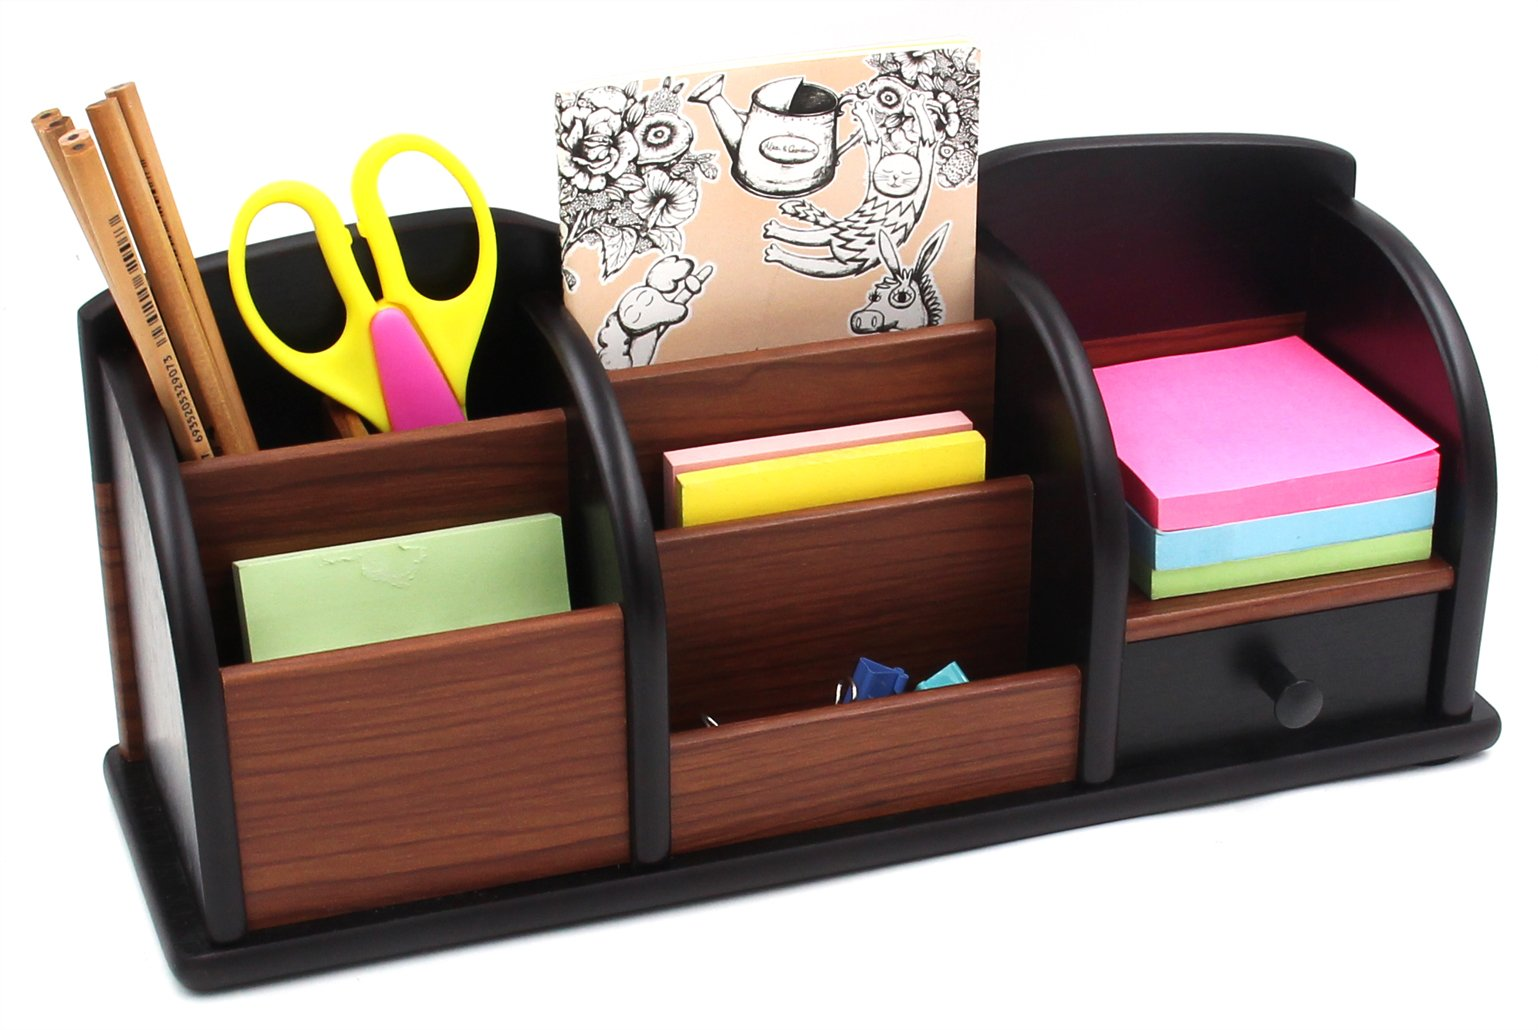 home image ideas plan furniture your wooden of desk decor own picture organizer